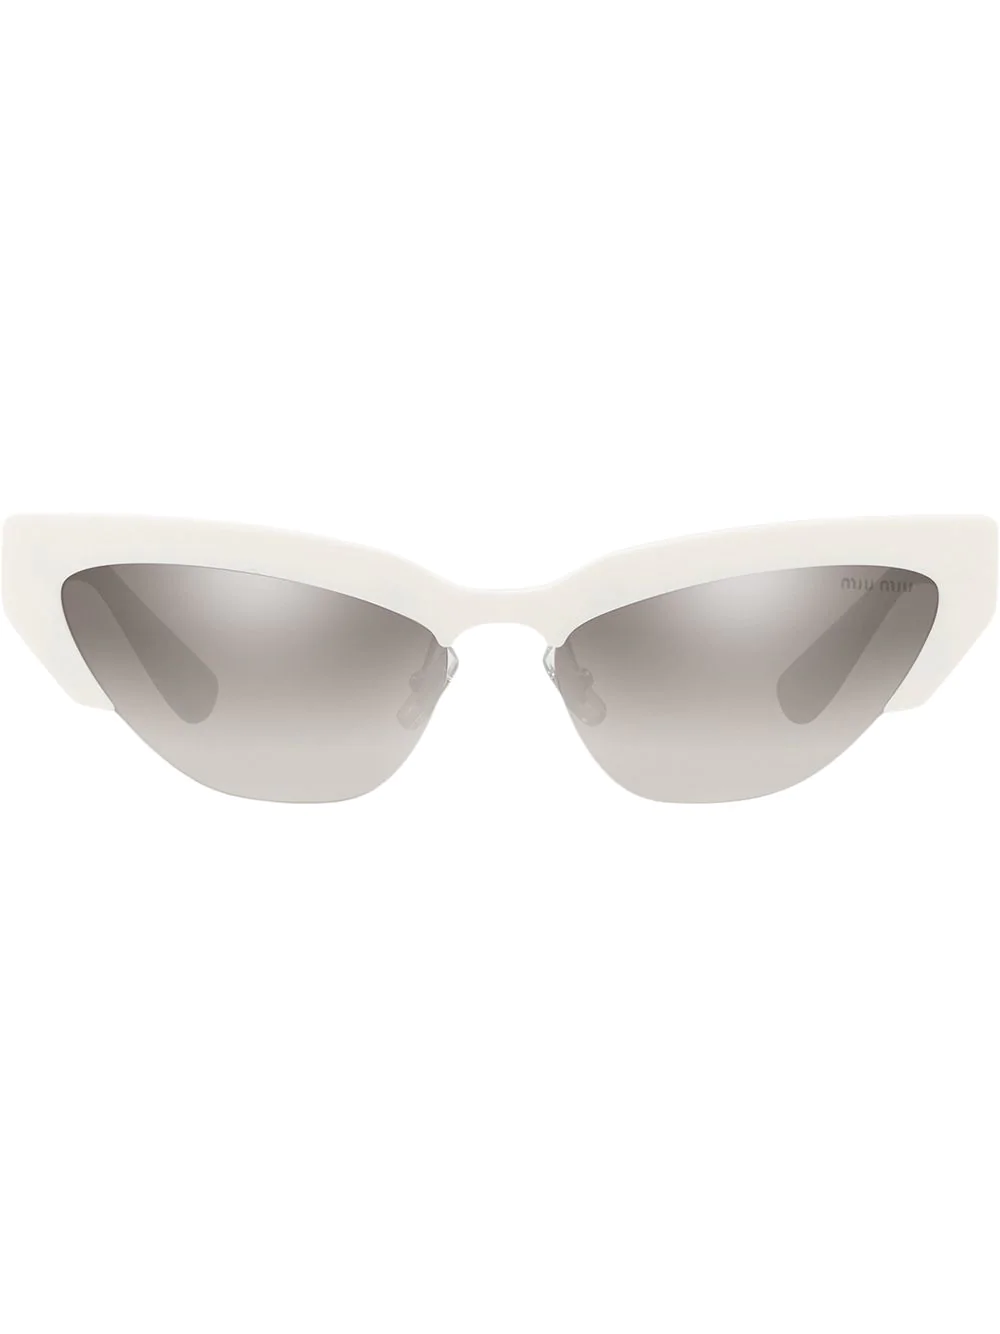 c93bc9abc75 Miu Miu Eyewear Cat Eye Sunglasses - Grey. Farfetch